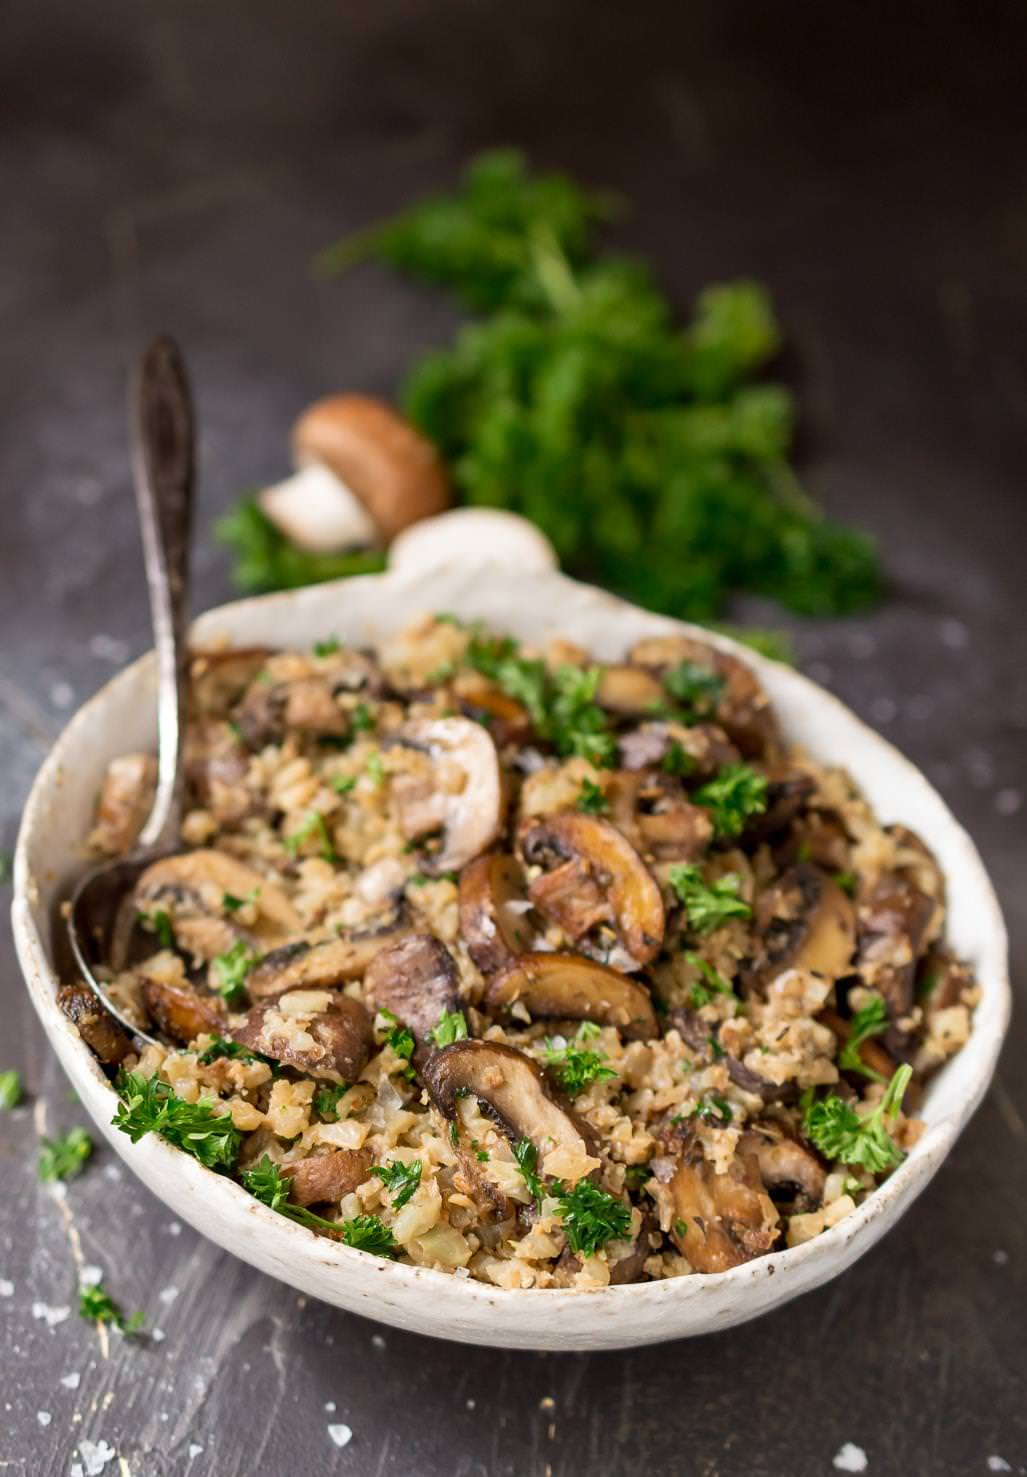 close up photo of cauliflower mushroom rice in white bowl with silver serving spoon. mushroom and parsley in the background